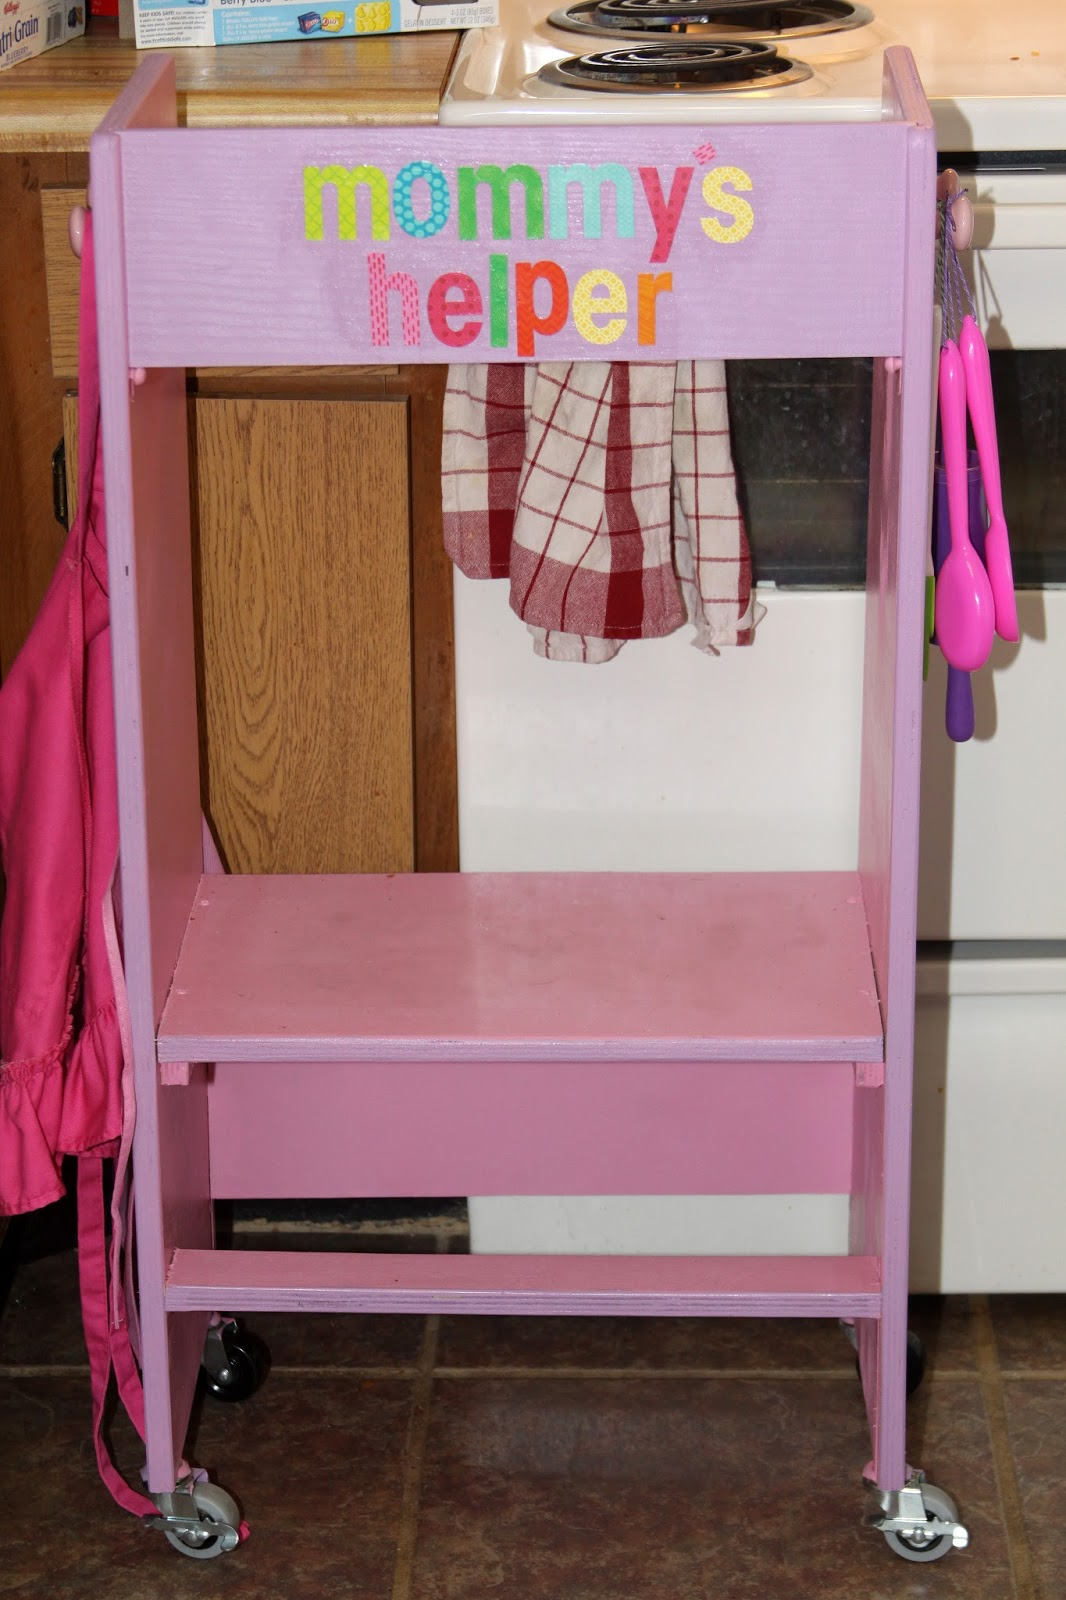 DIY Kidu0027s Kitchen Helper Stool u0026 Learning Tower : kid kitchen stool - islam-shia.org